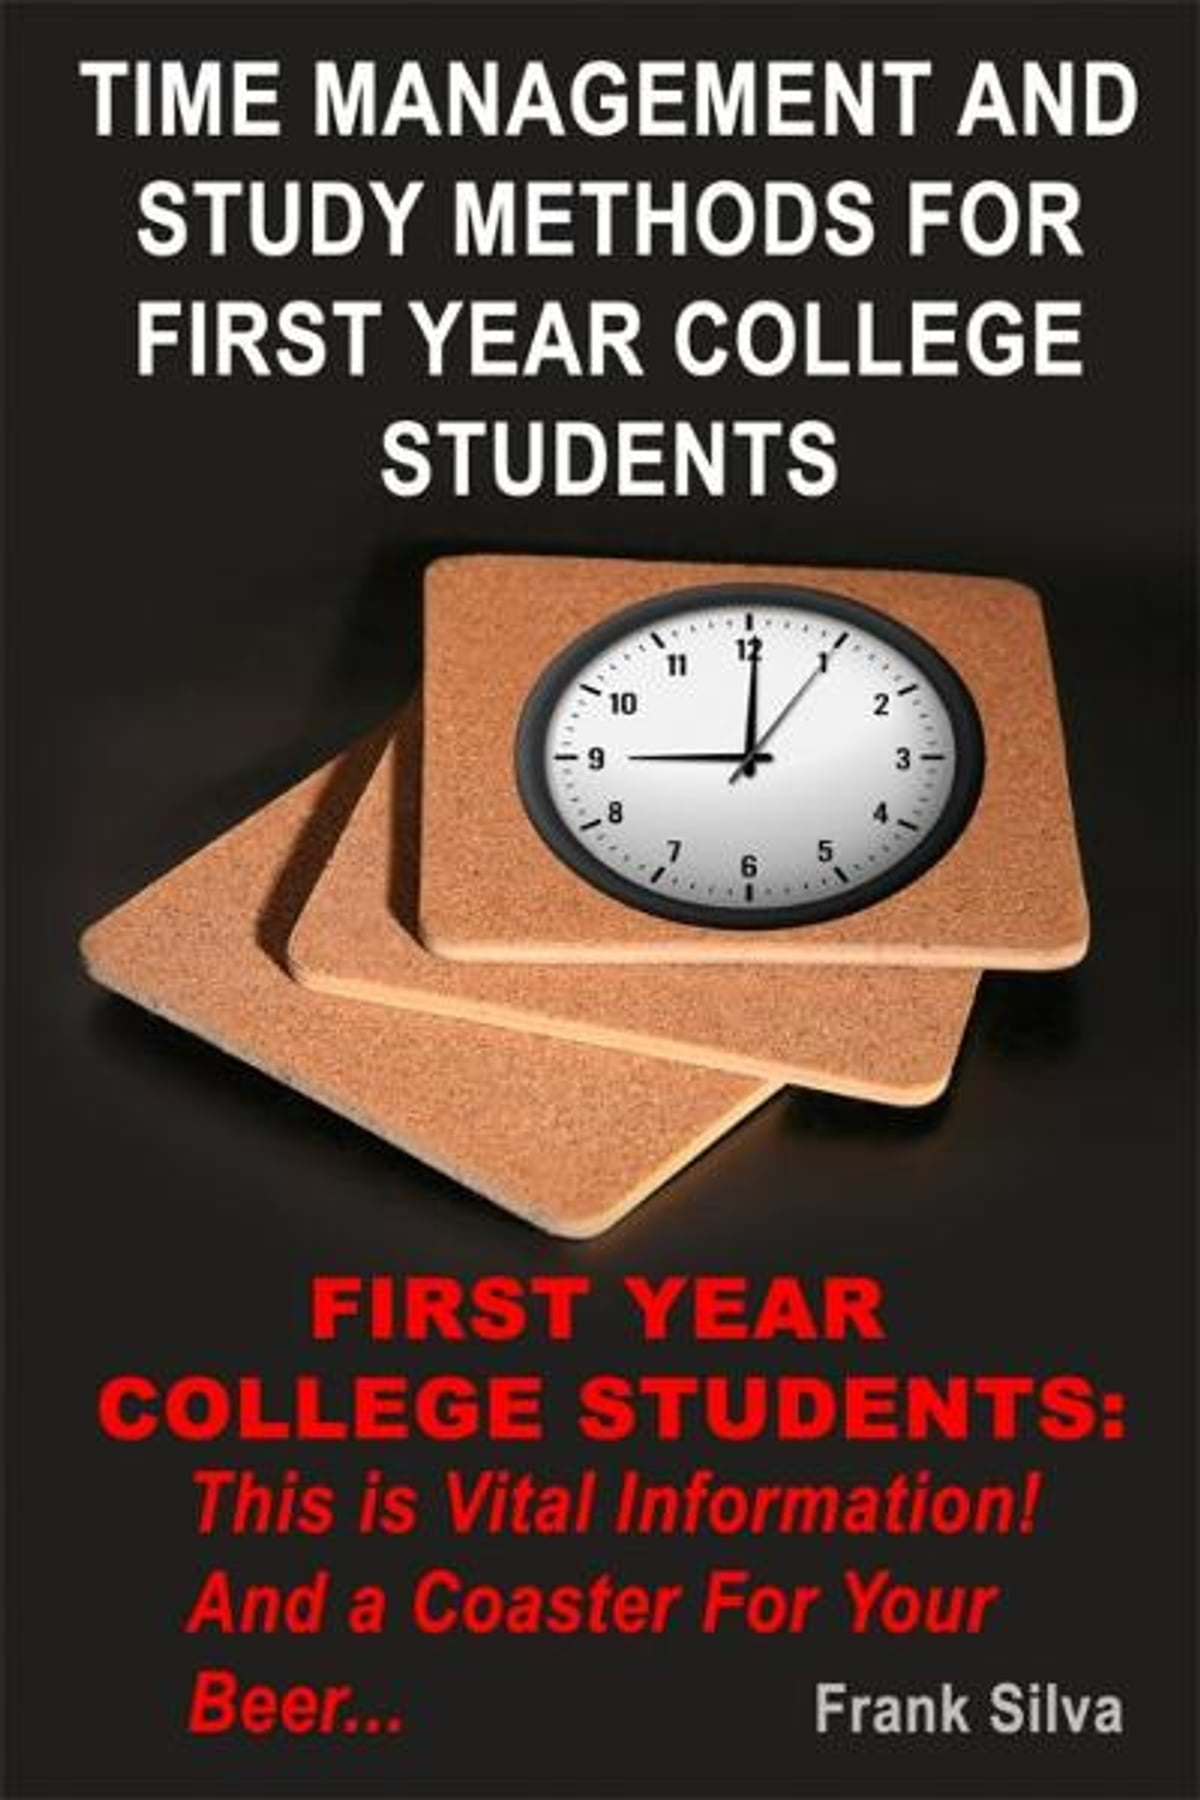 time management and study methods for first year college students time management and study methods for first year college students ebook by frank silva 9781476025759 kobo